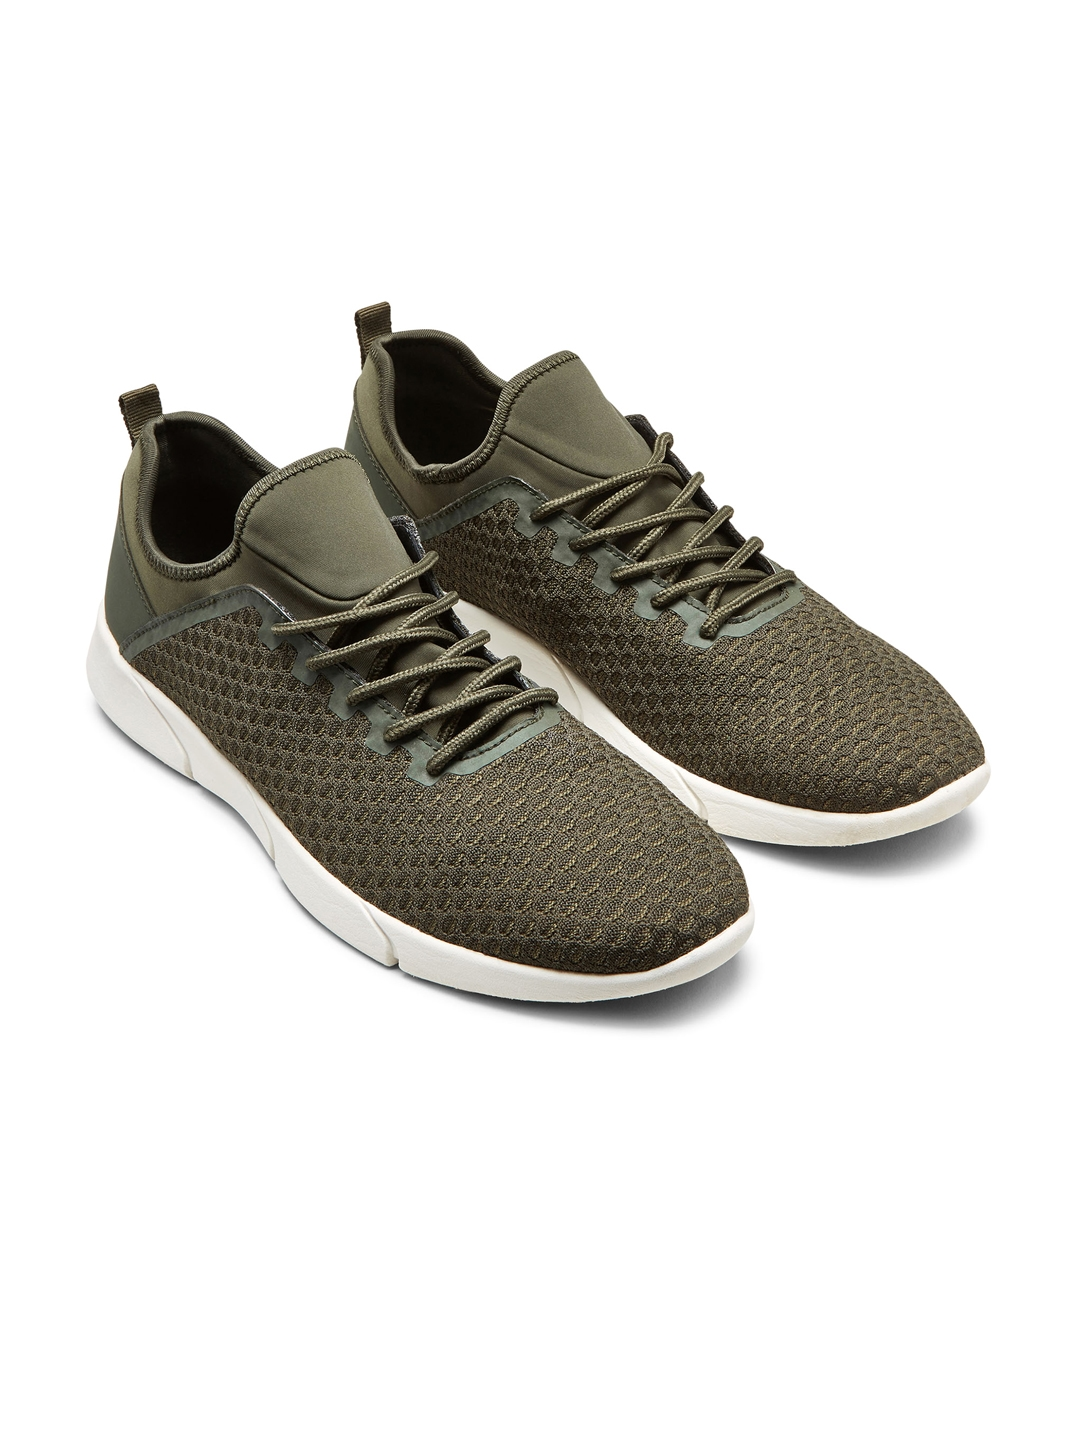 00c82ca3c975 Buy Next Men Olive Green Sneakers - Casual Shoes for Men 2003154 ...